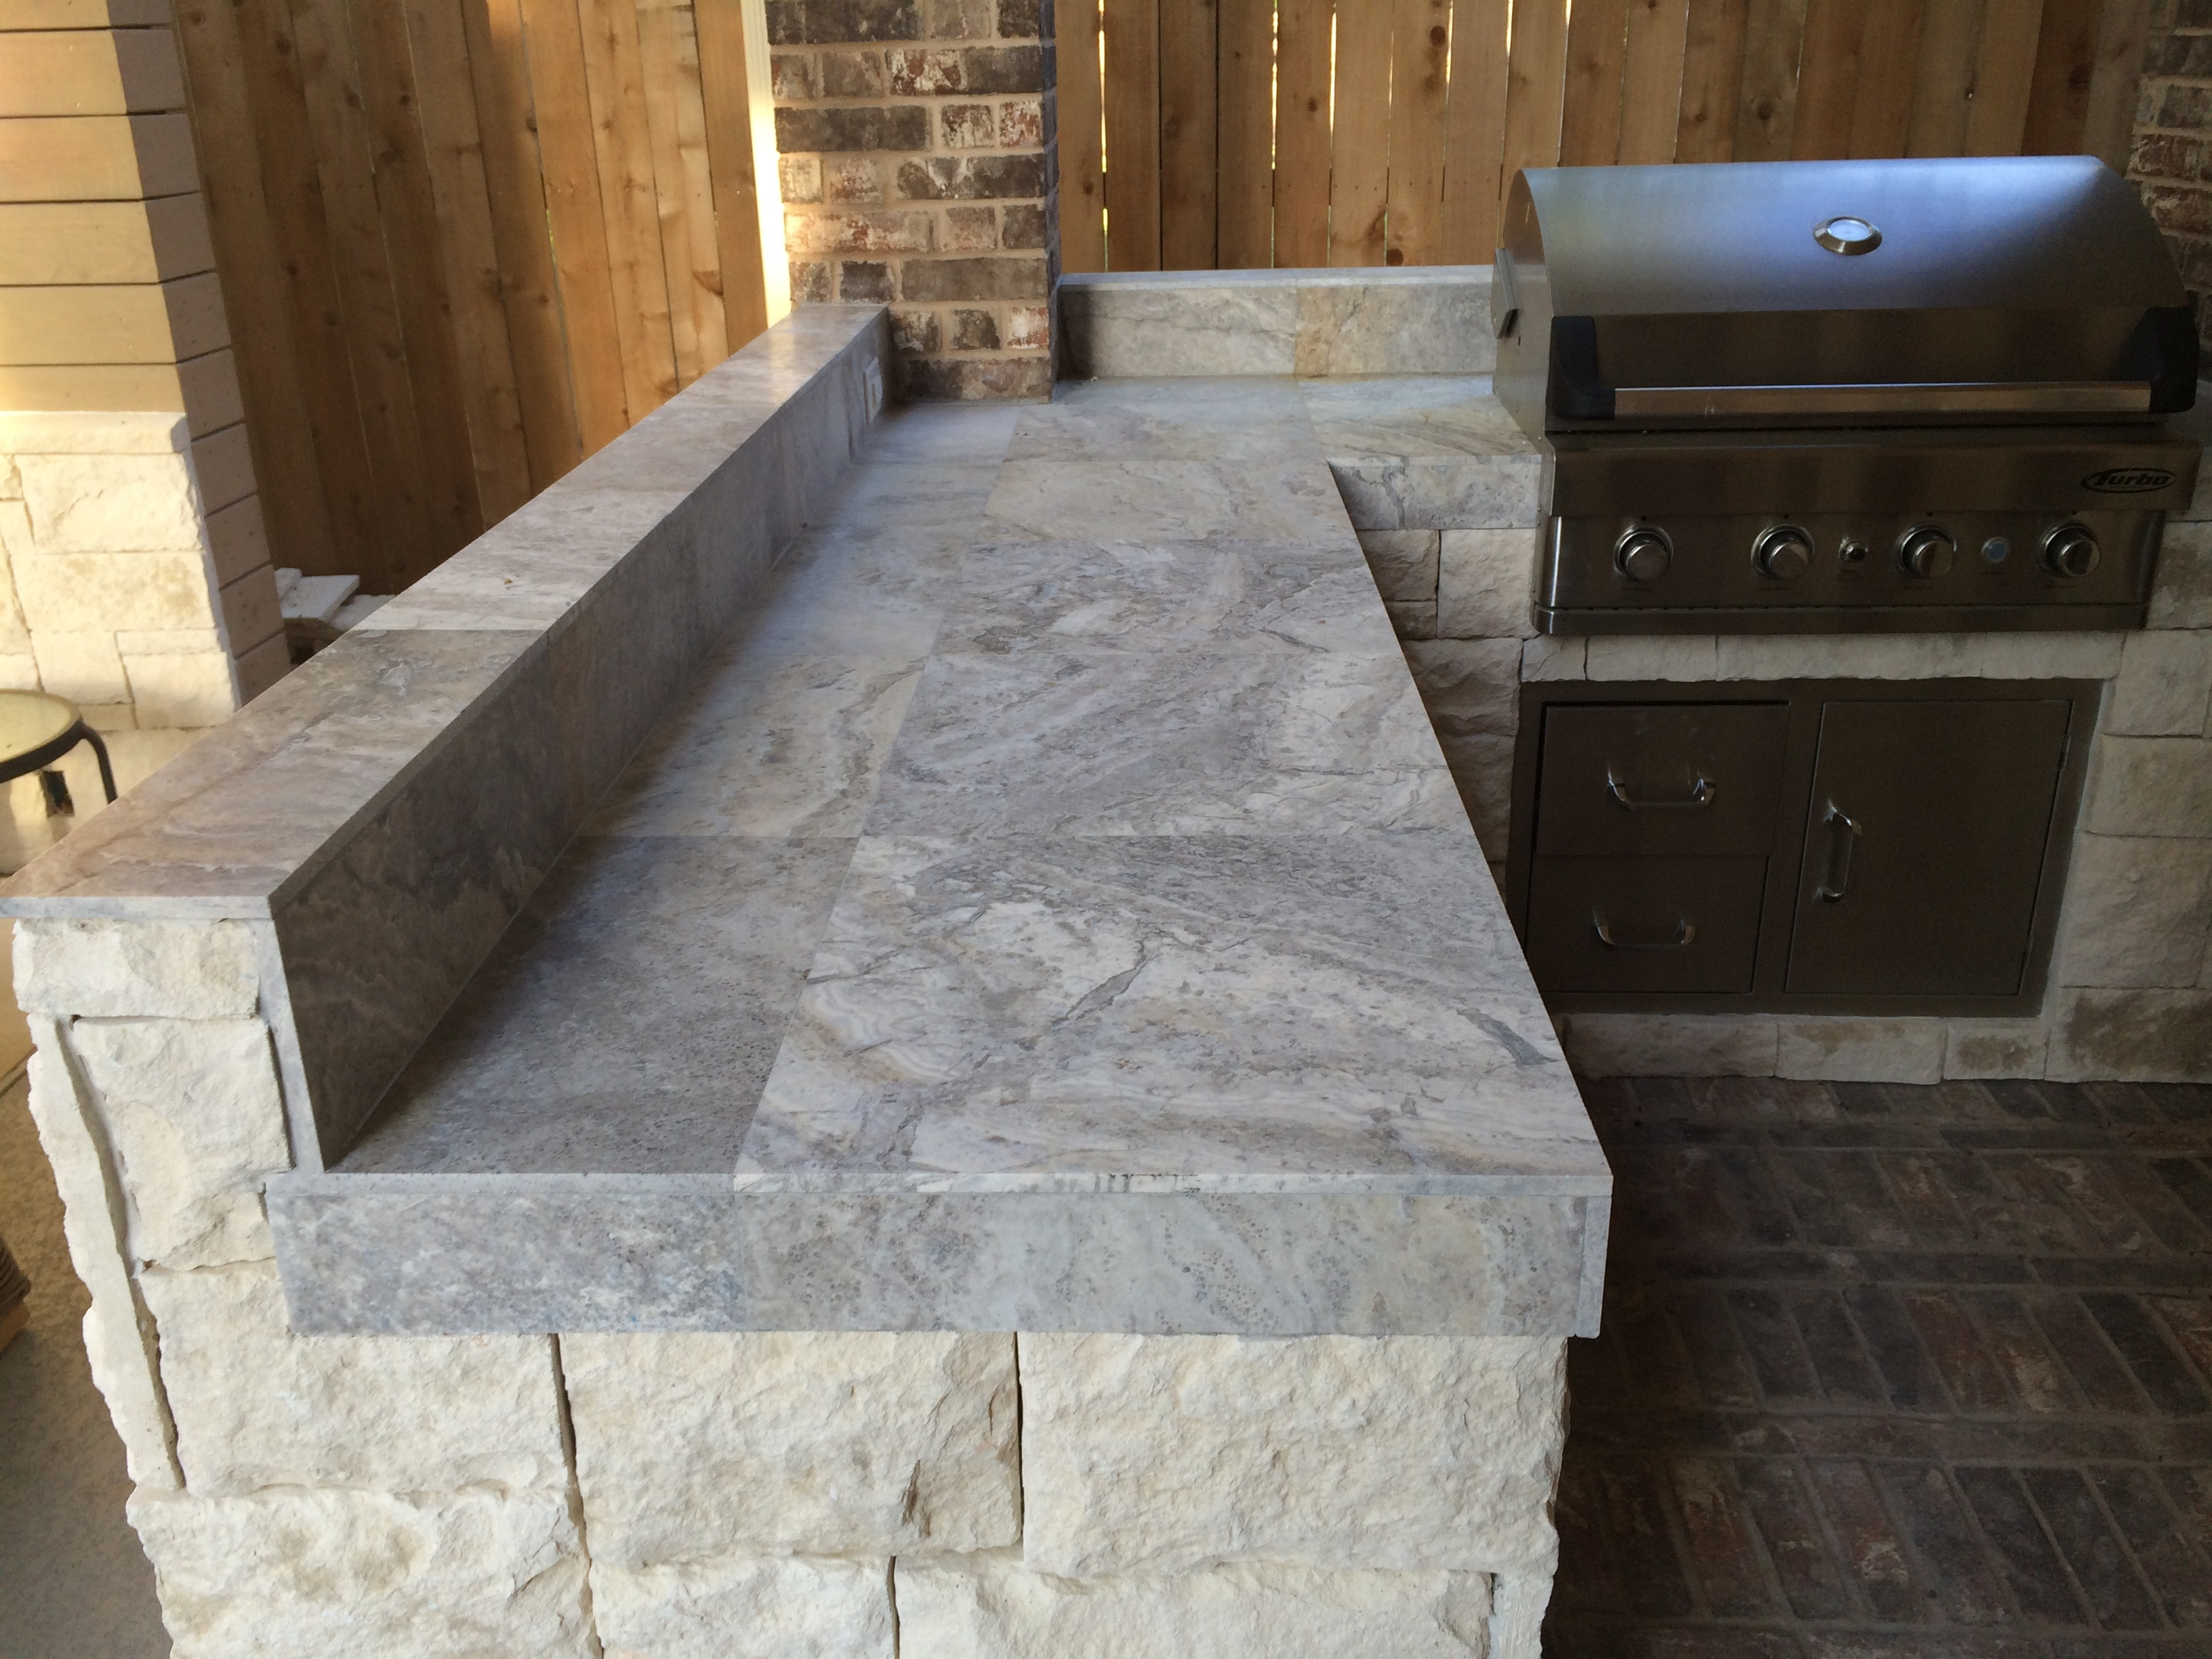 Image of: Houston Outdoor Kitchen With Silver Travertine Tile Countertop Intended For Outdoor Kitchen Granite Countertops Outdoor Kitchen Granite Countertops Design